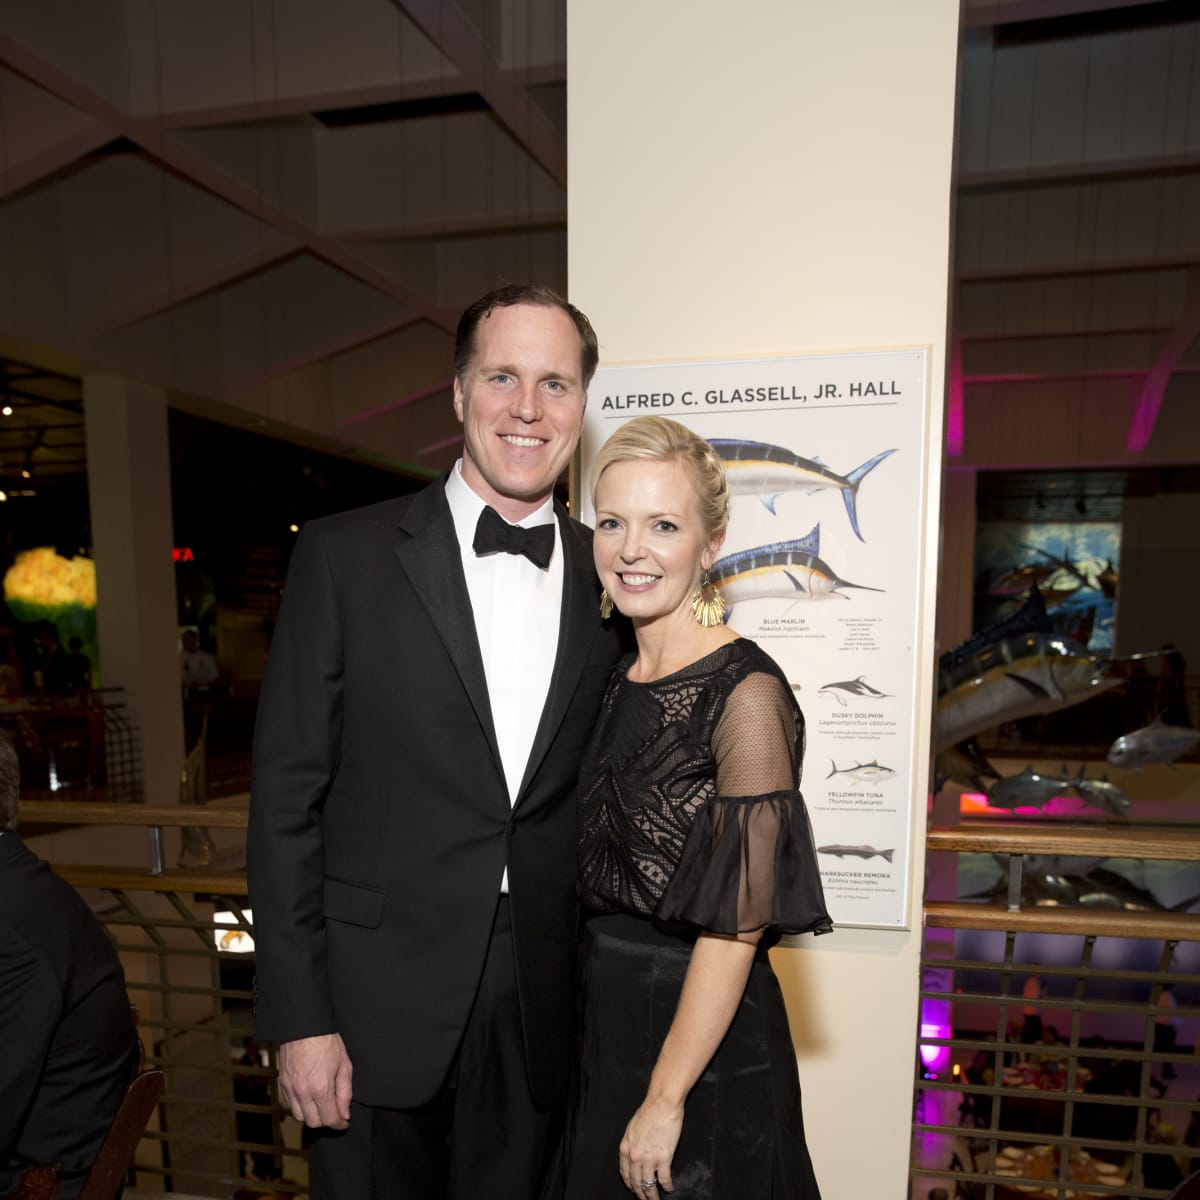 Museum of Natural science gala, March 2016, Henry Bragg, Laurence Bragg